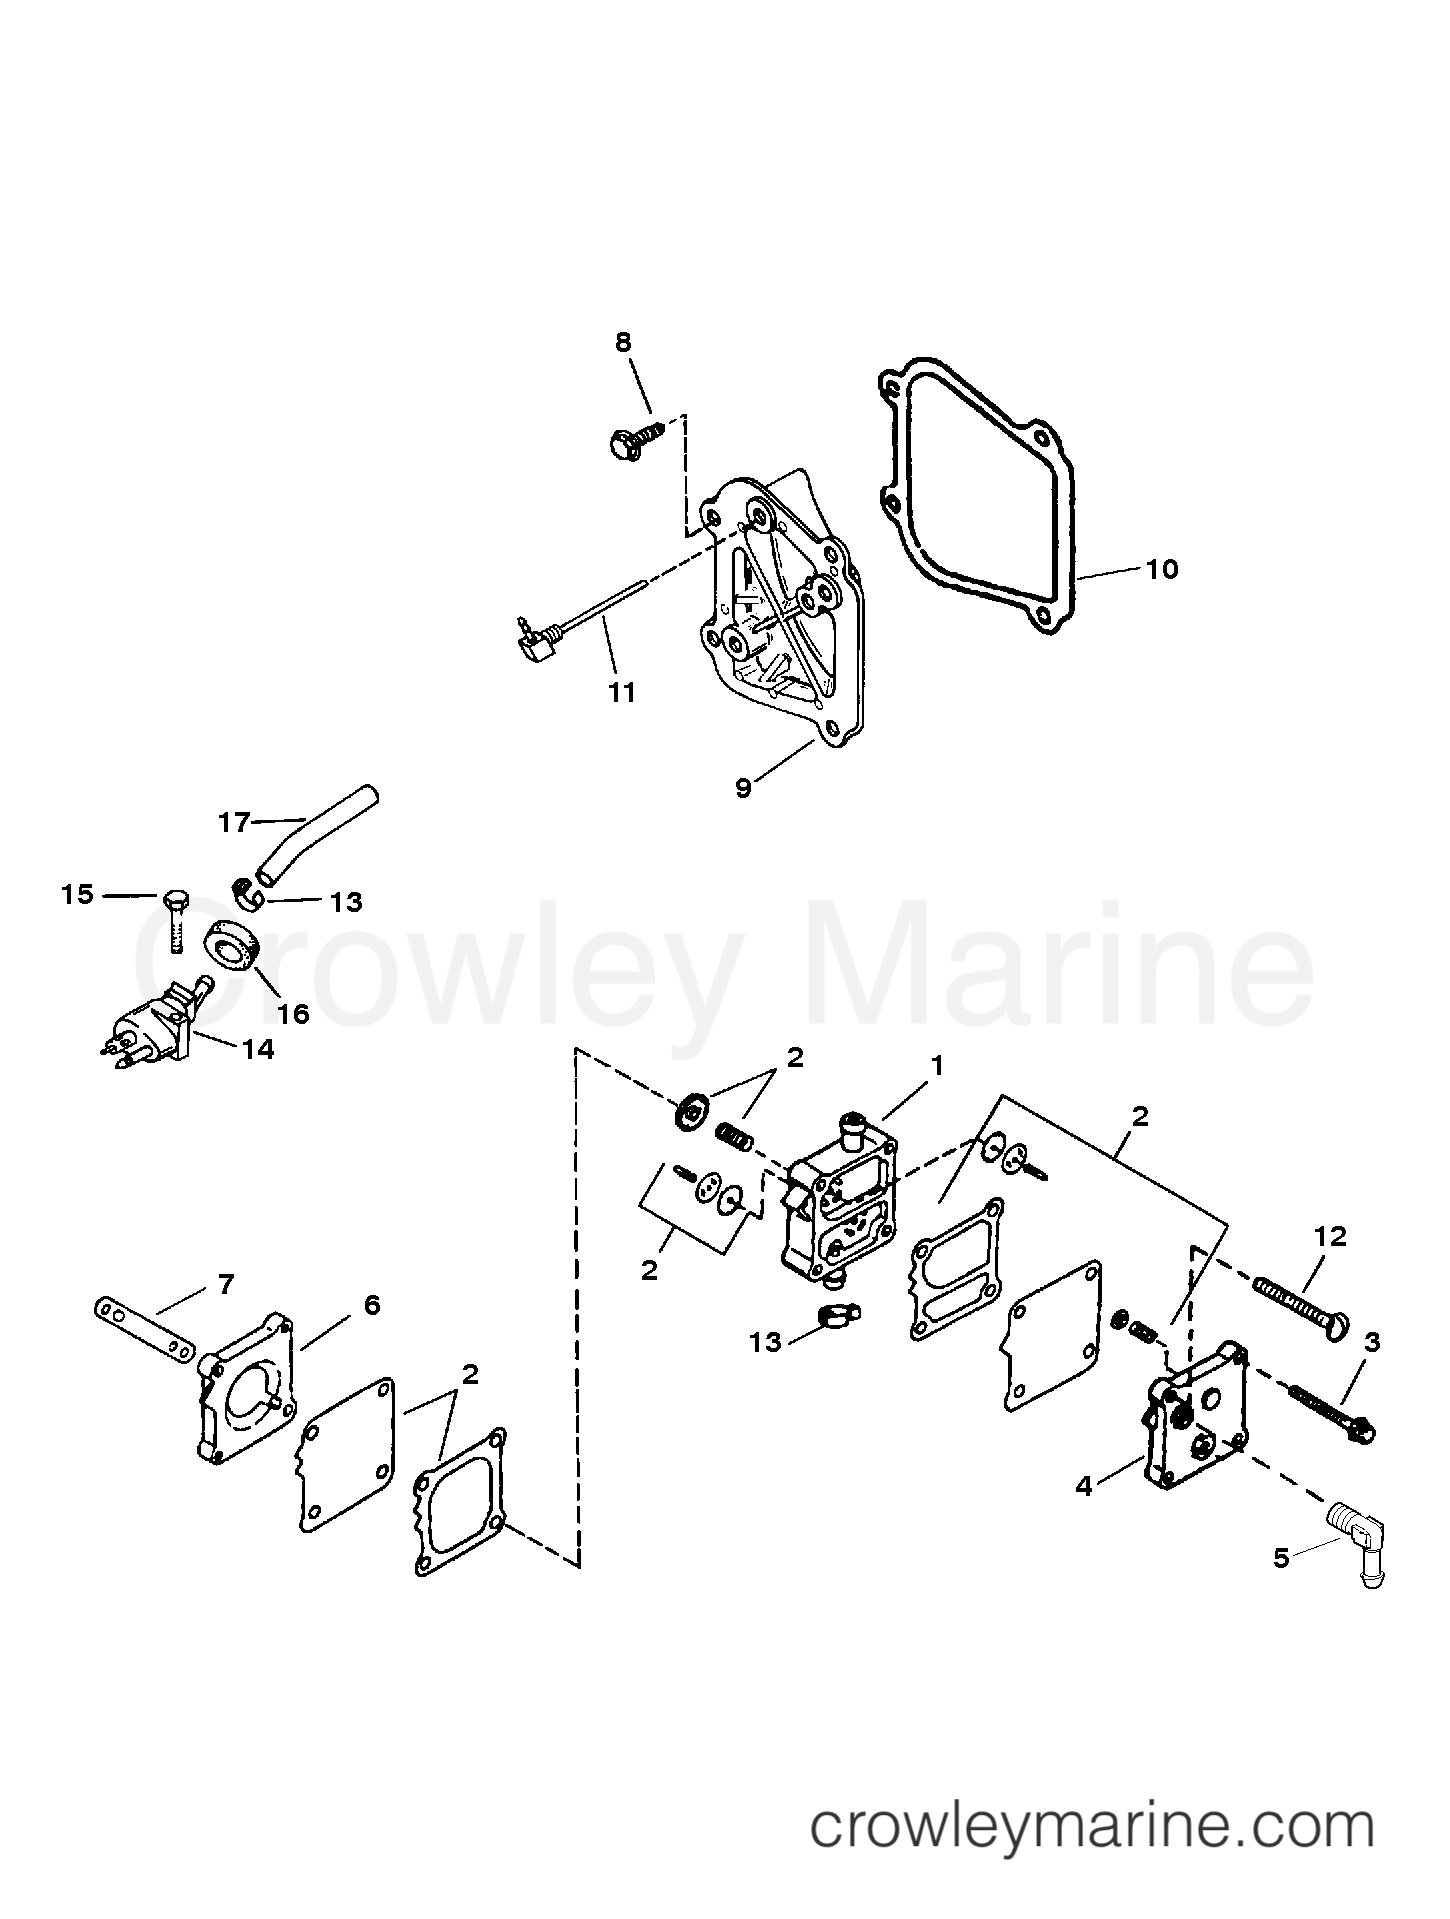 Fuel Pump Assembly And Components